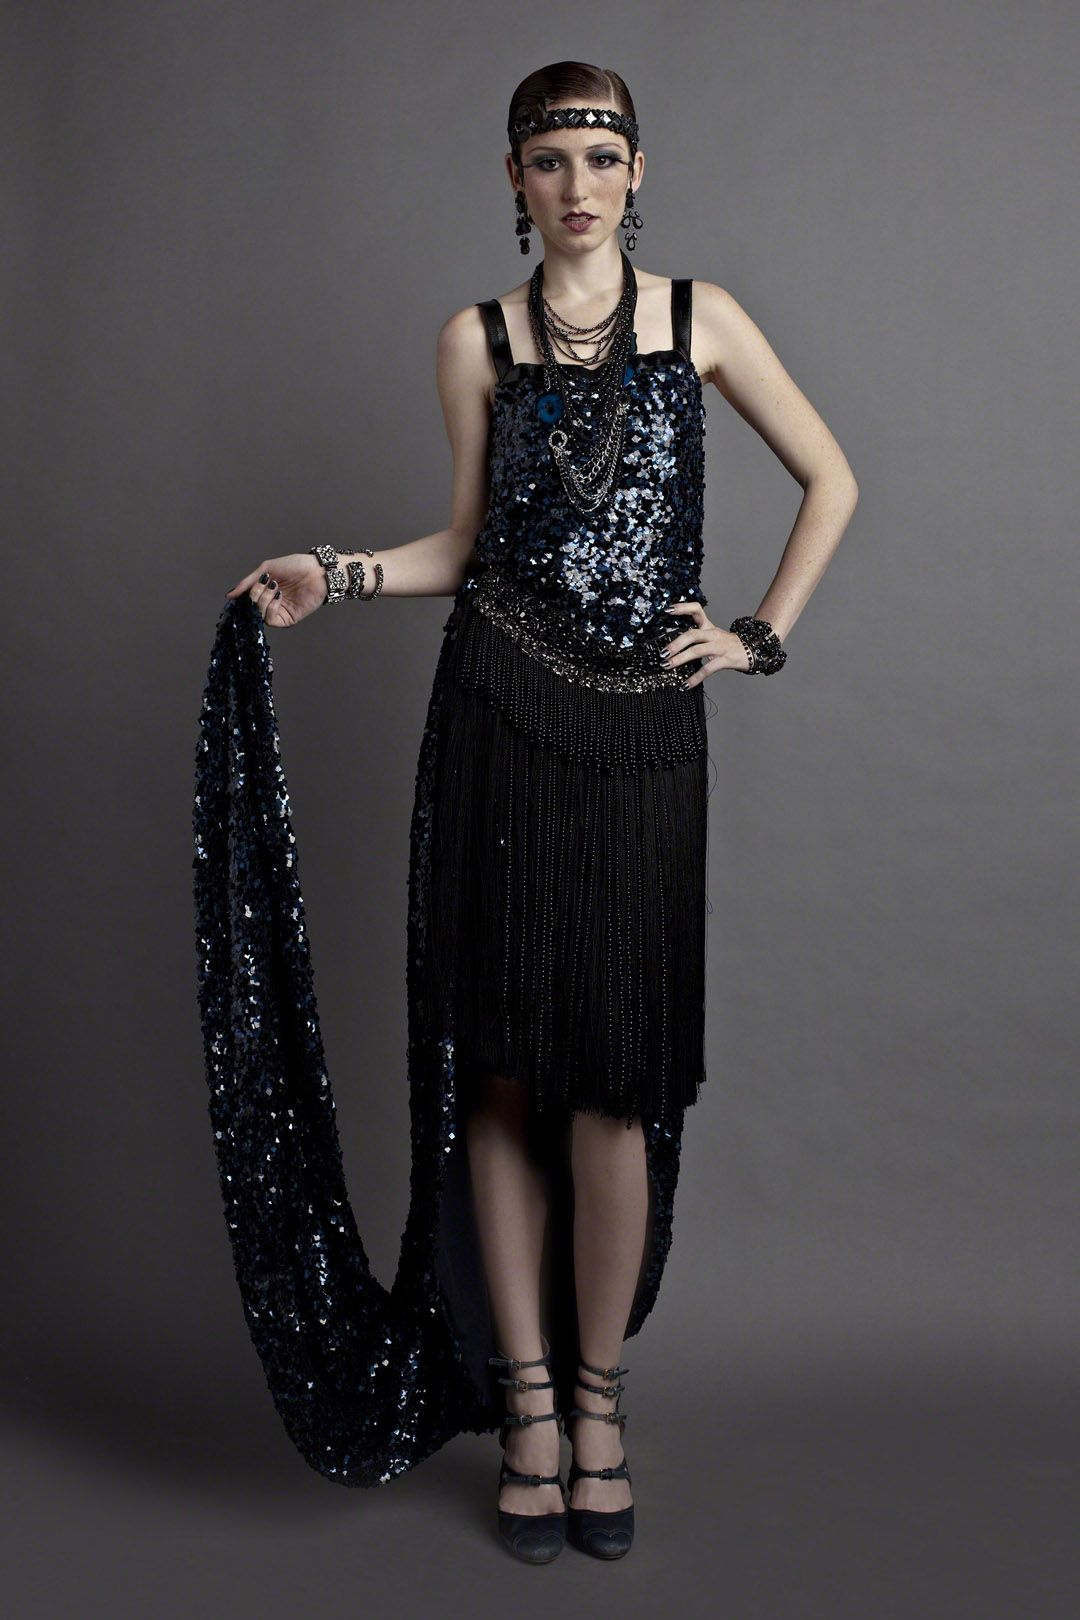 Thegreatgatsby Fashion 1920s Gatsby Glamour Pinterest 1920s Gatsby And Flappers